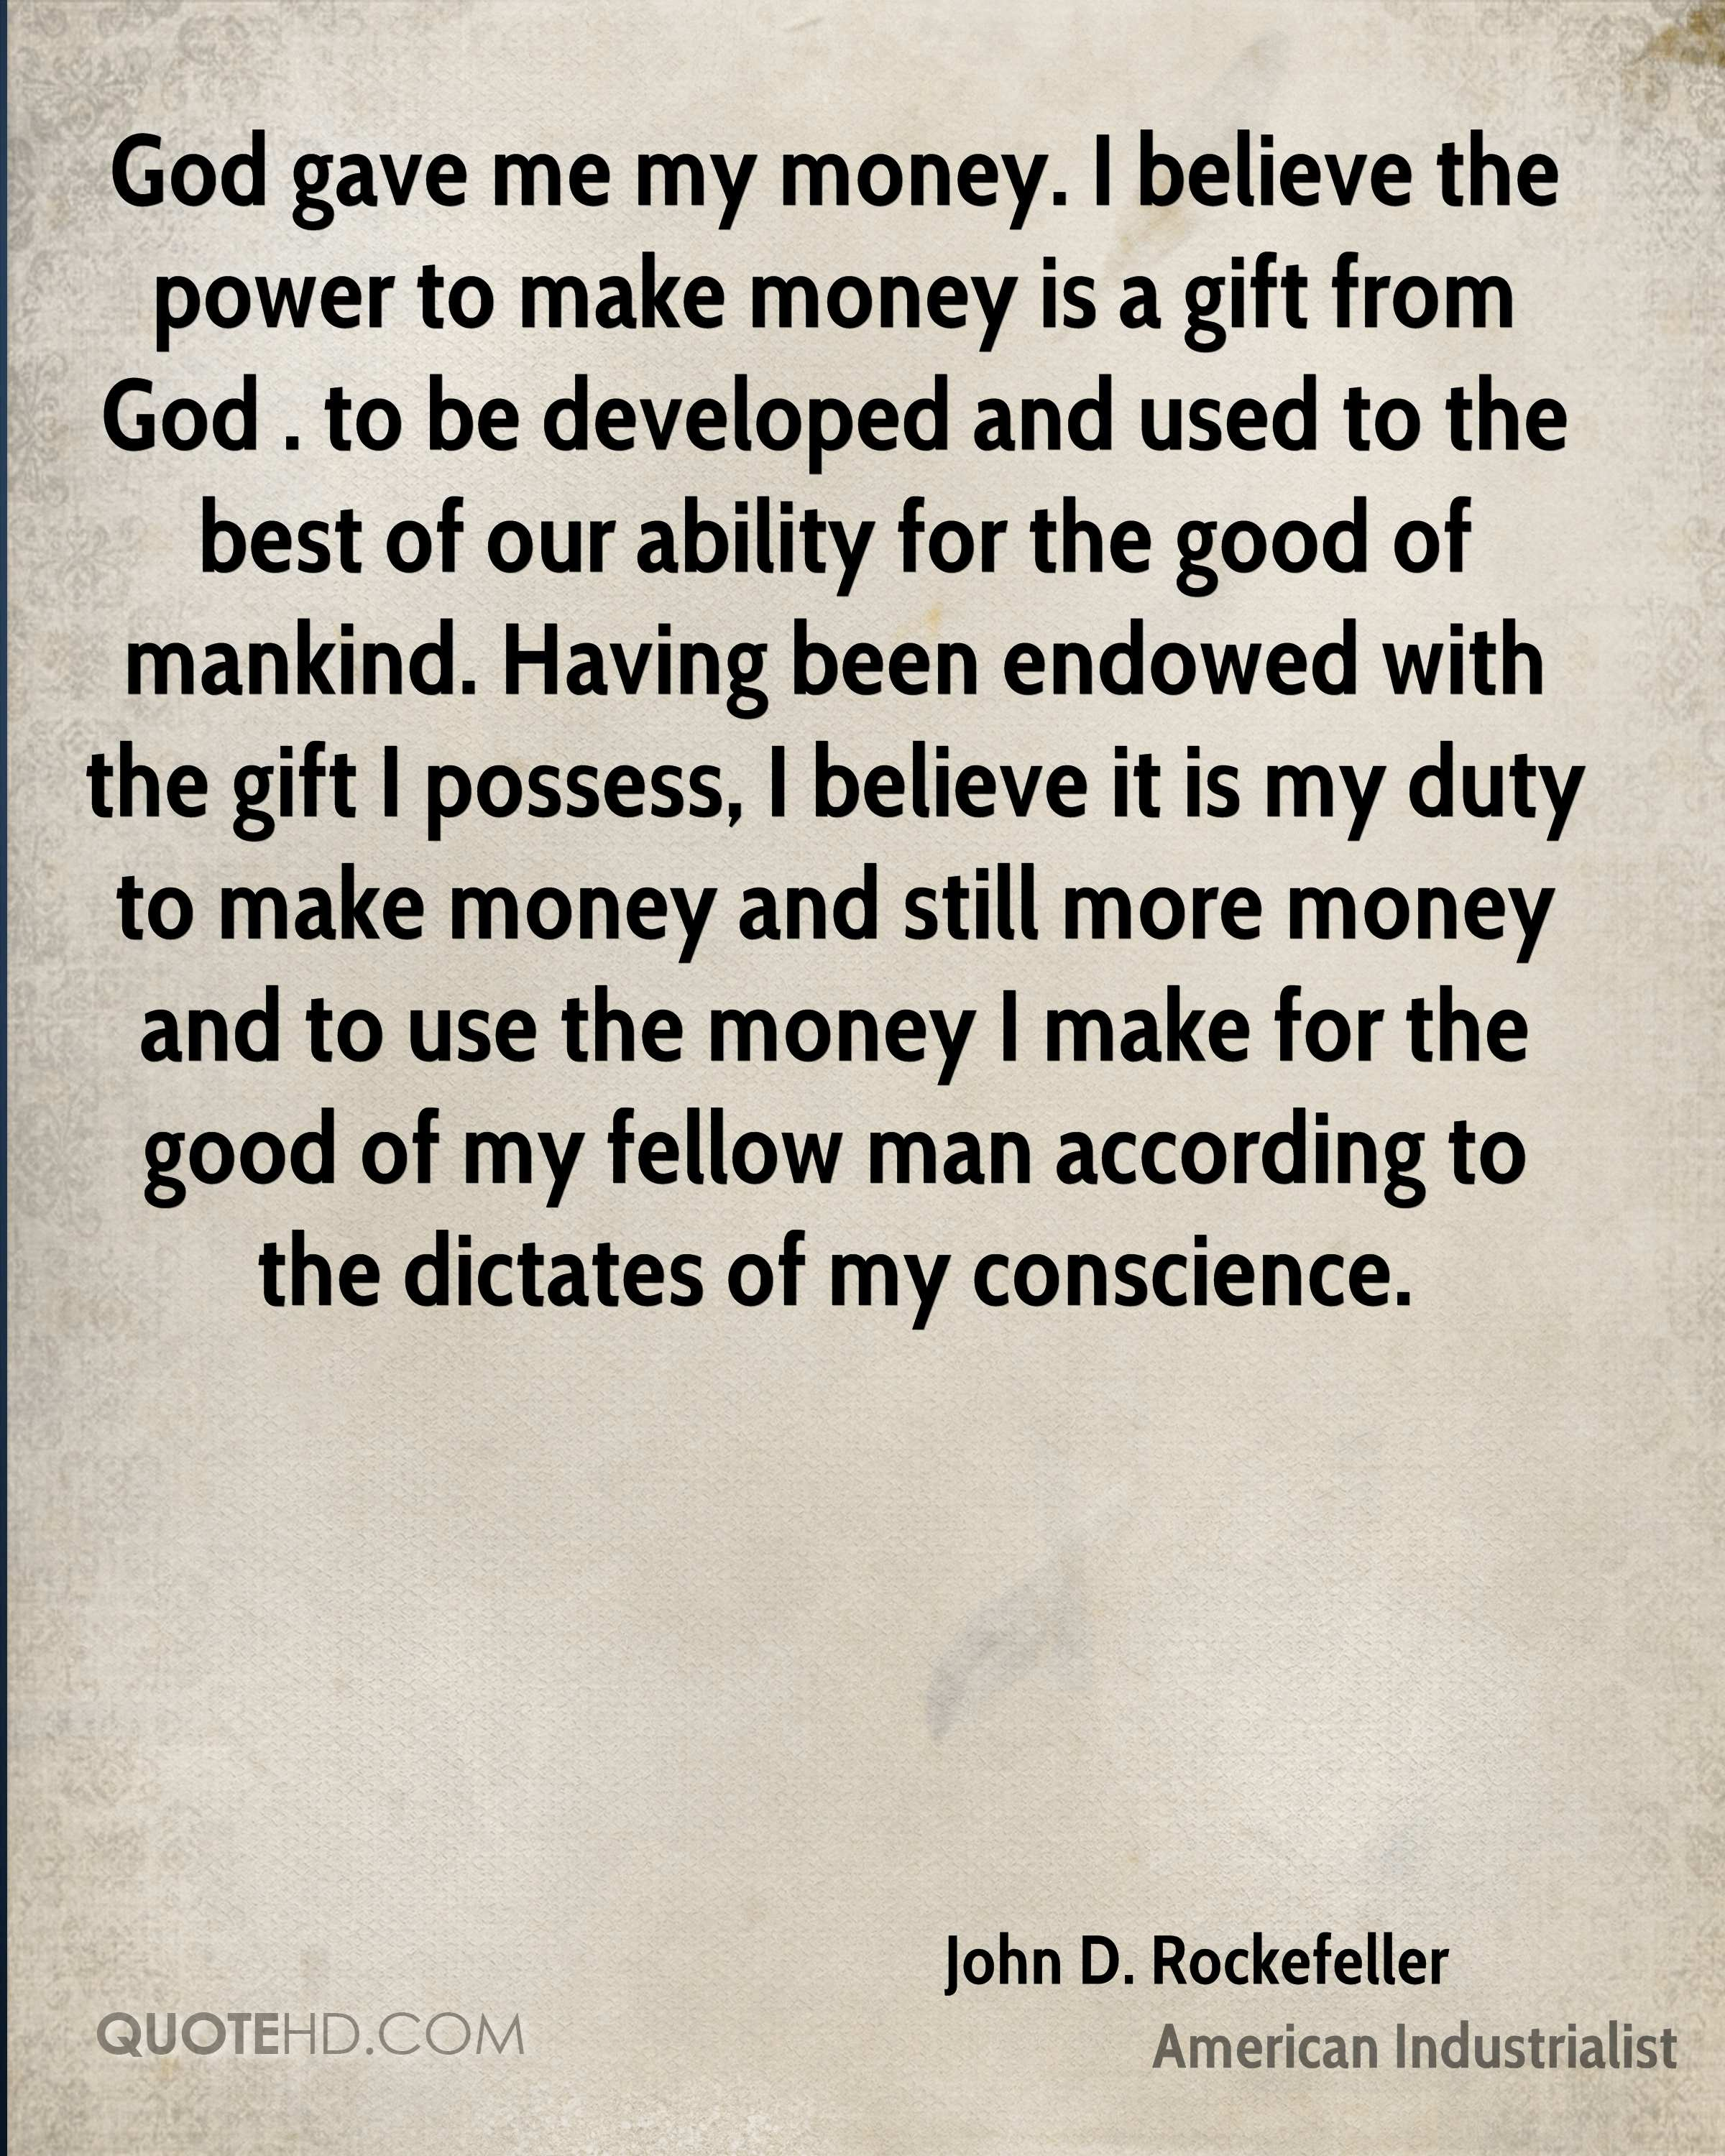 God gave me my money. I believe the power to make money is a gift from God . to be developed and used to the best of our ability for the good of mankind. Having been endowed with the gift I possess, I believe it is my duty to make money and still more money and to use the money I make for the good of my fellow man according to the dictates of my conscience.